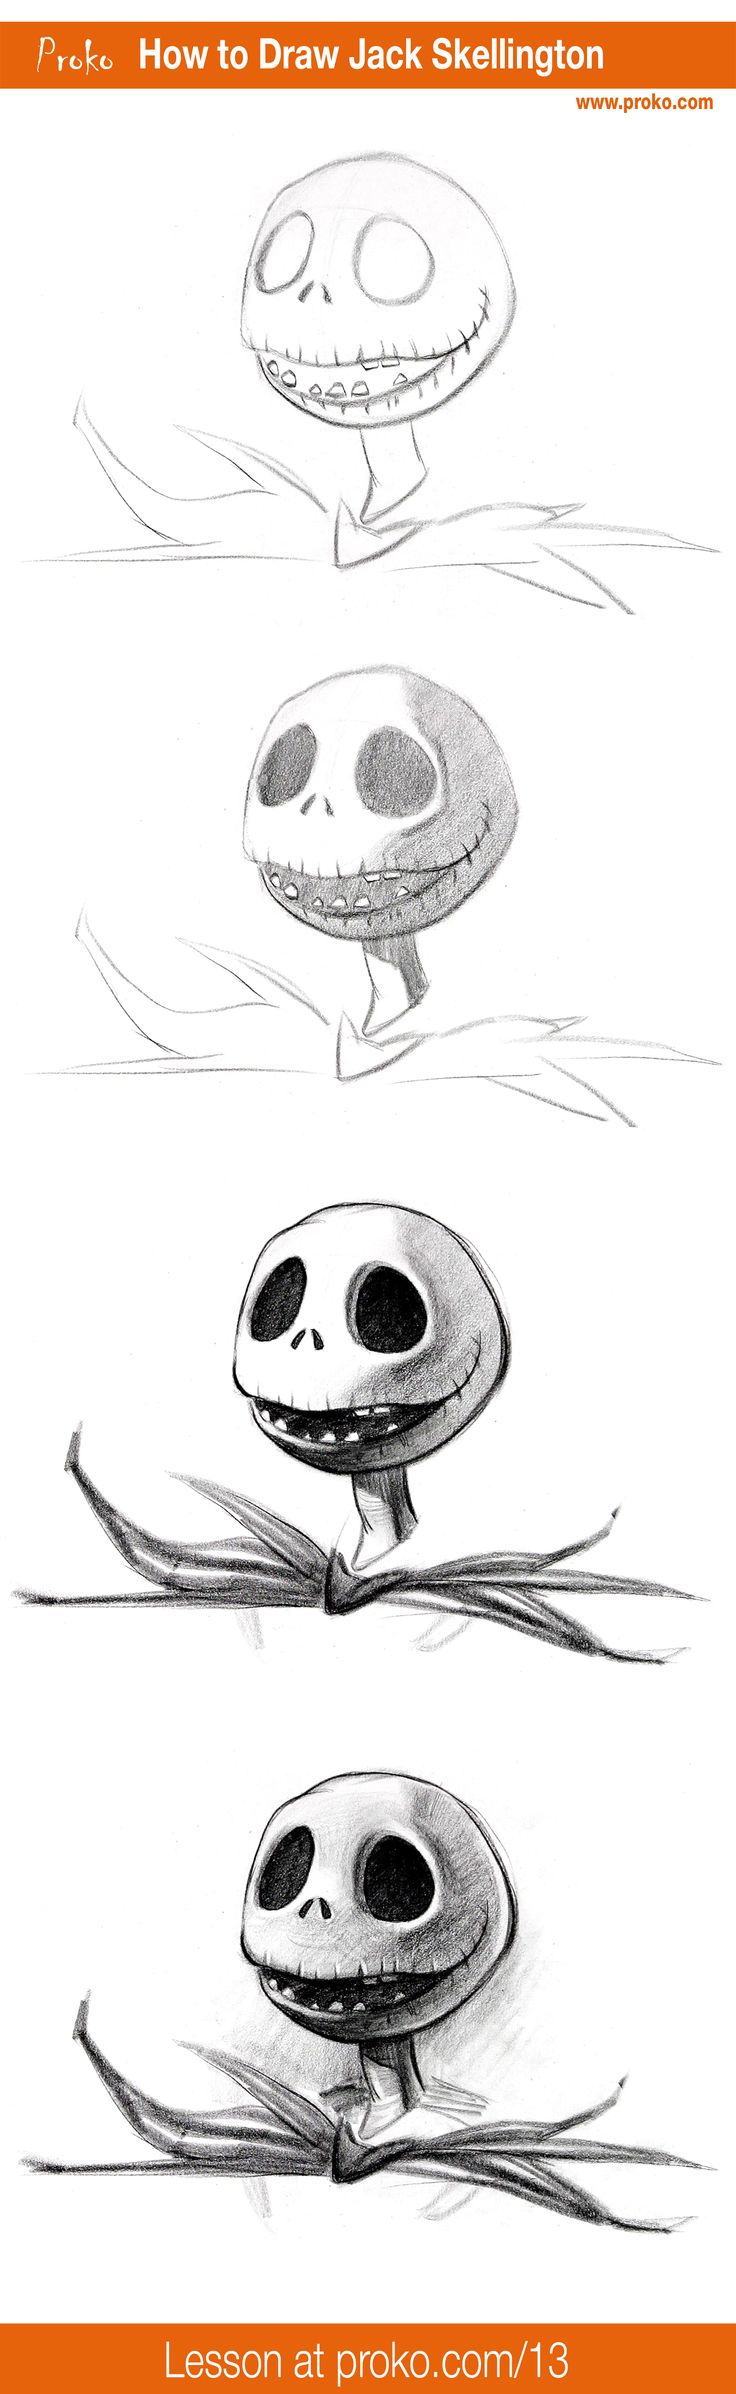 "Get in the Halloween spirit as I show you how to draw Jack Skellington from ""The Nightmare Before Christmas"" by Tim Burton."